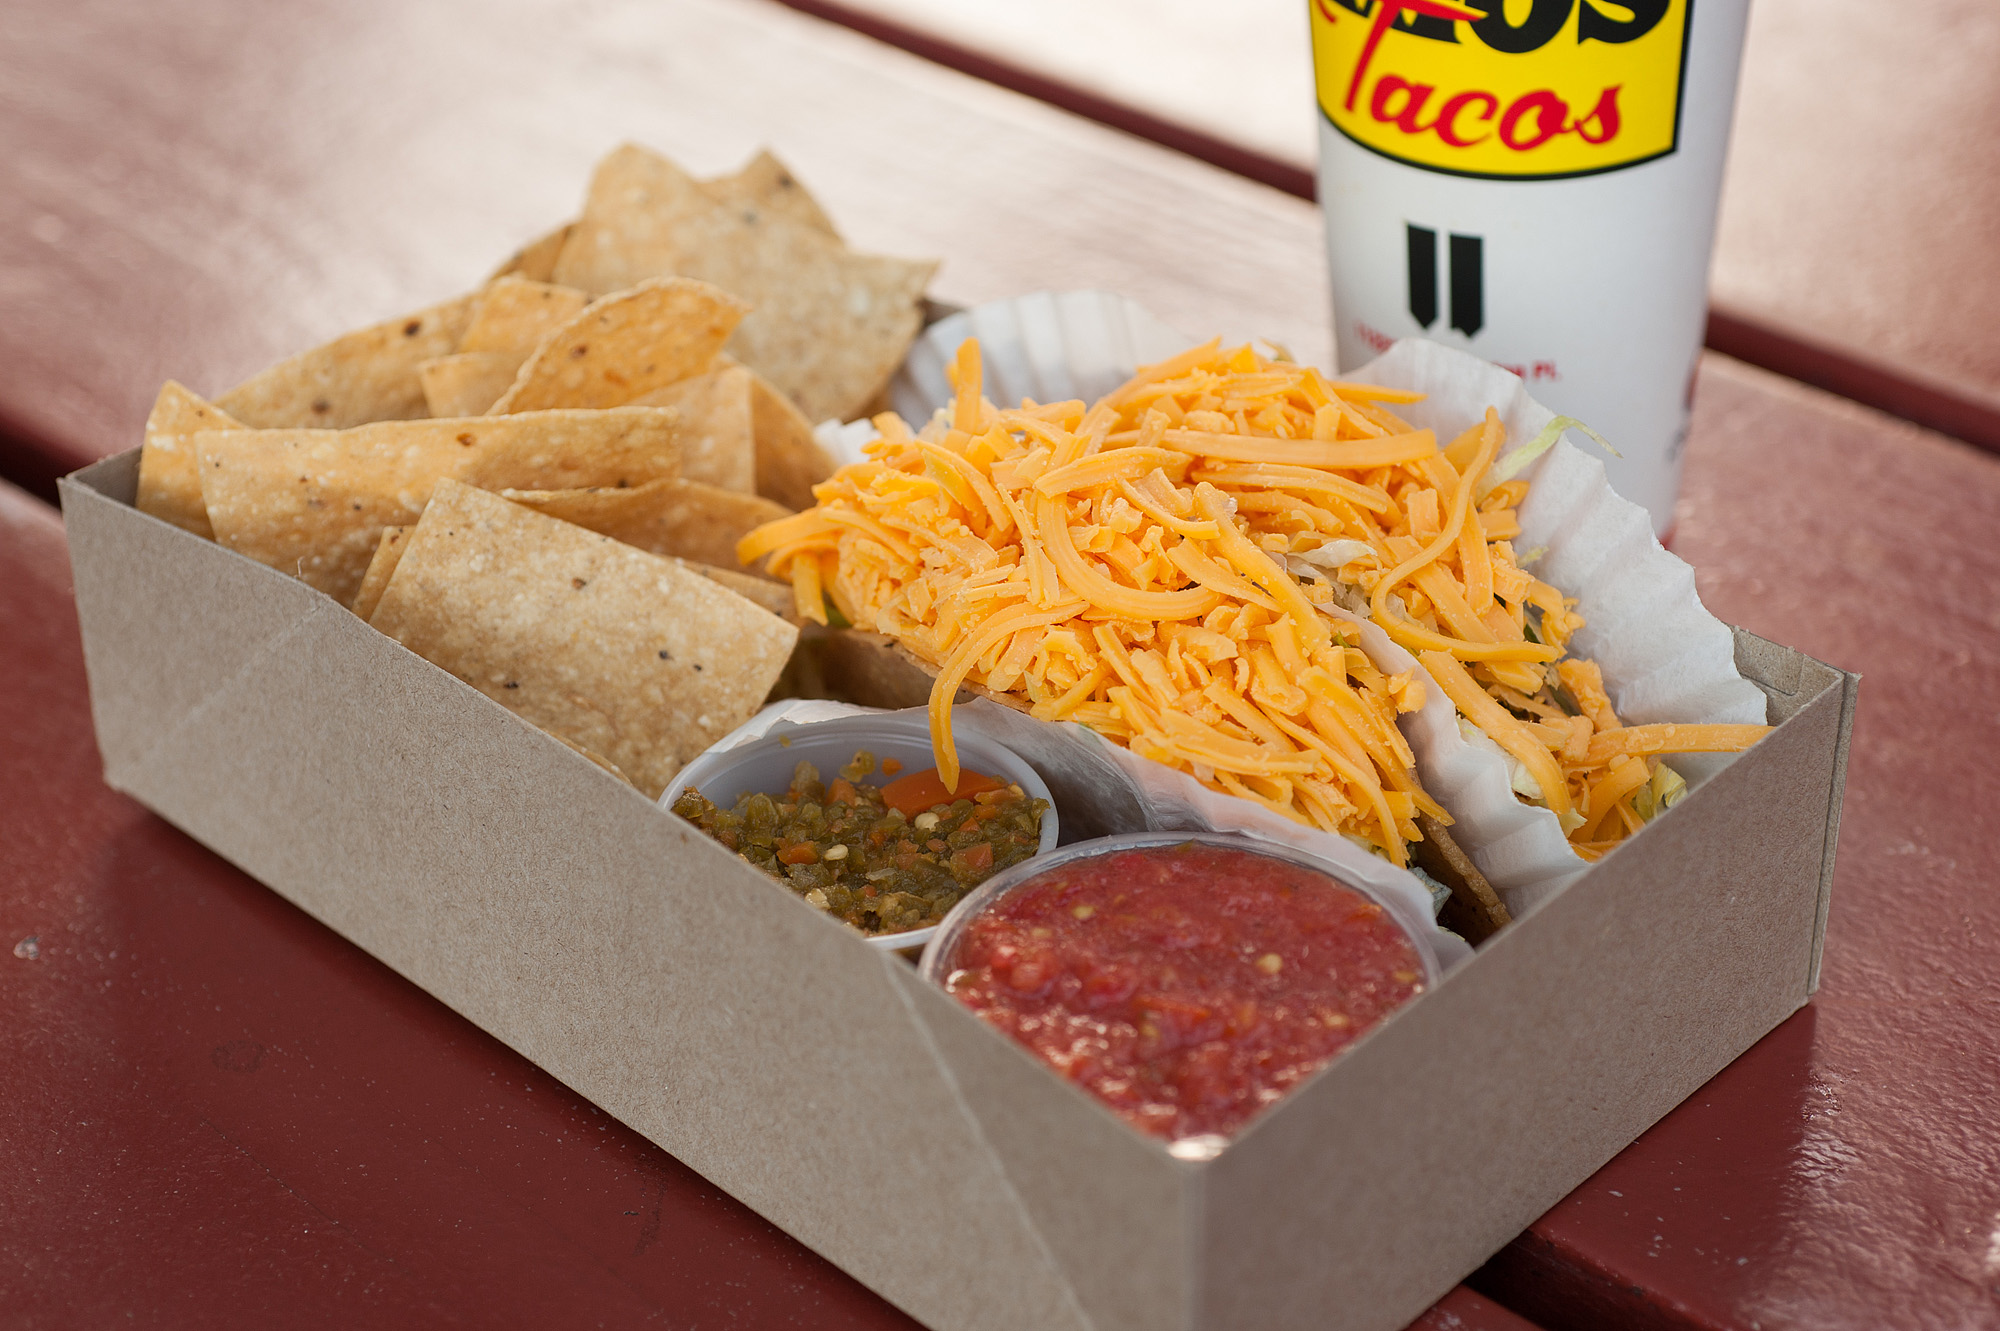 A box of tacos from Tito's, with shredded cheese on top of hard shells.